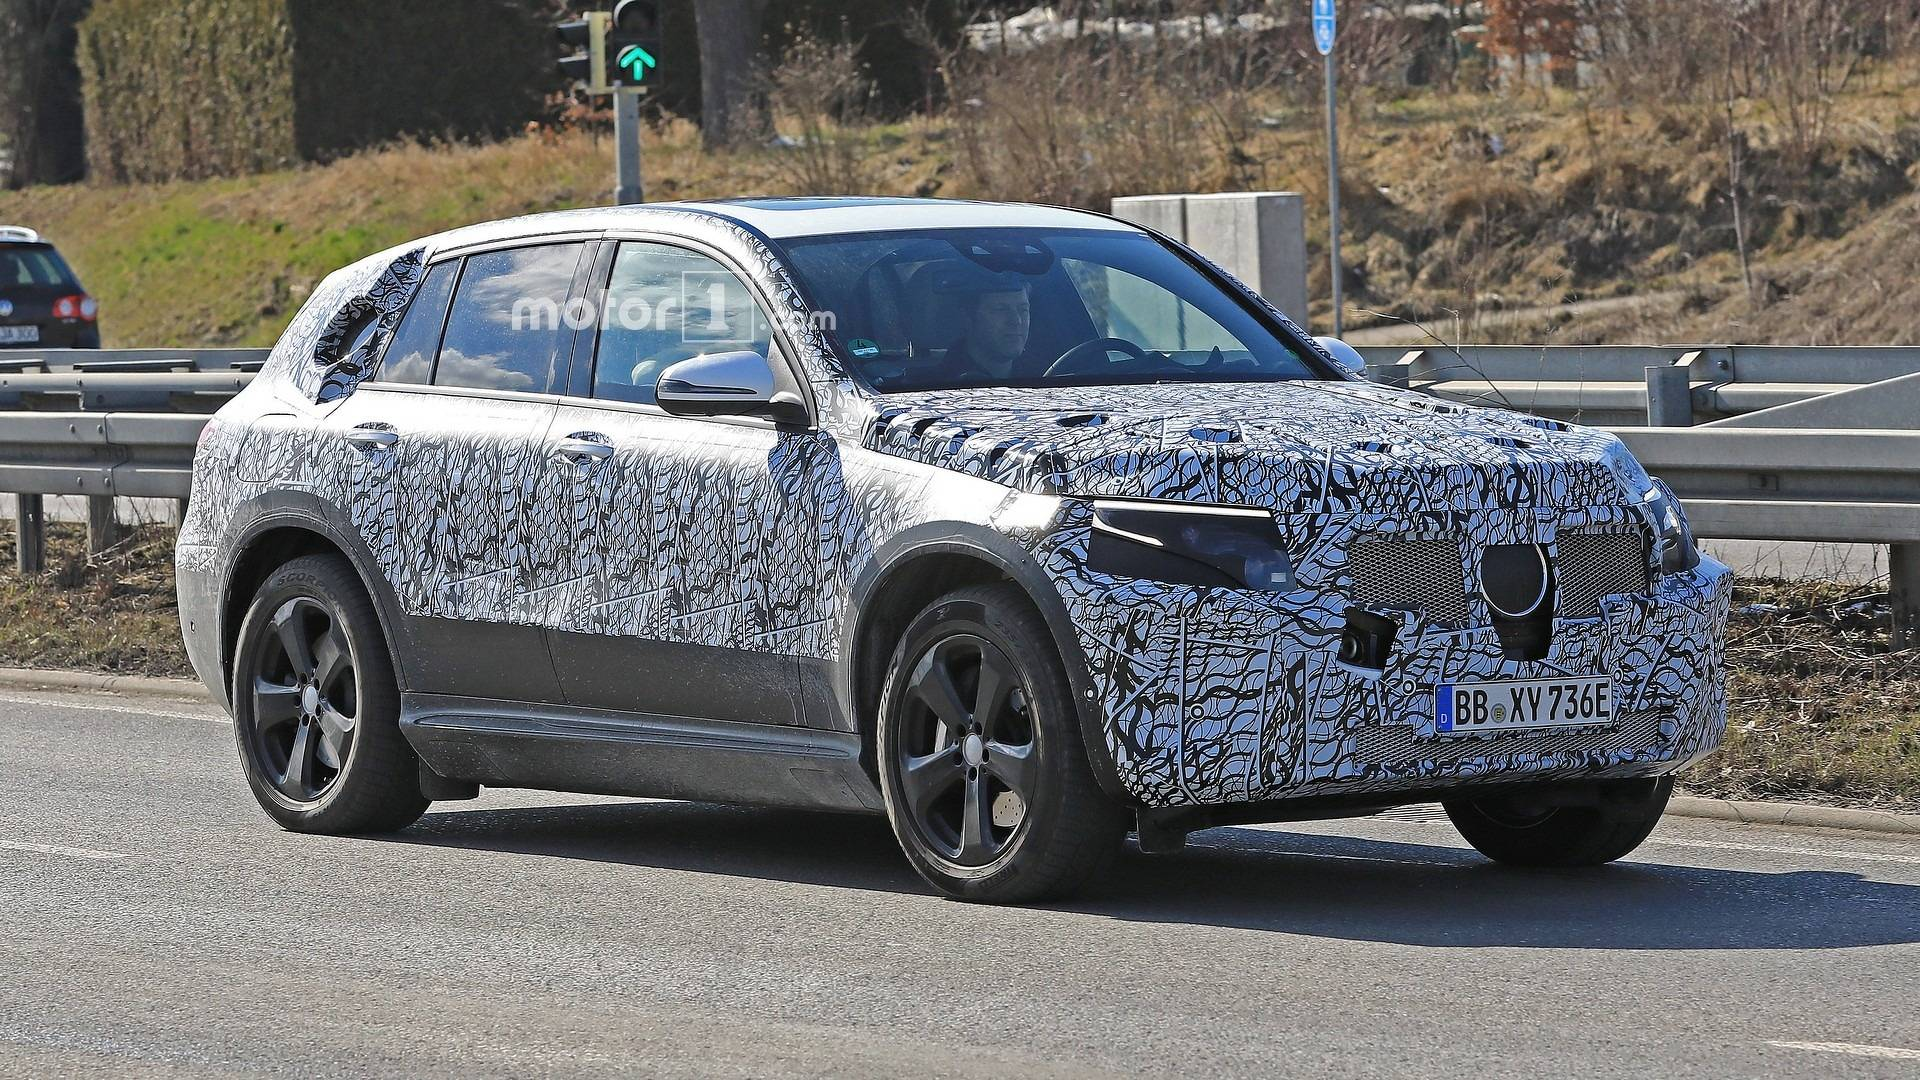 Mercedes-Benz began the road tests of its brand-new, all-electric EQ C SUV in the beginning 2018, so this isn't the first time we are seeing it out in the open